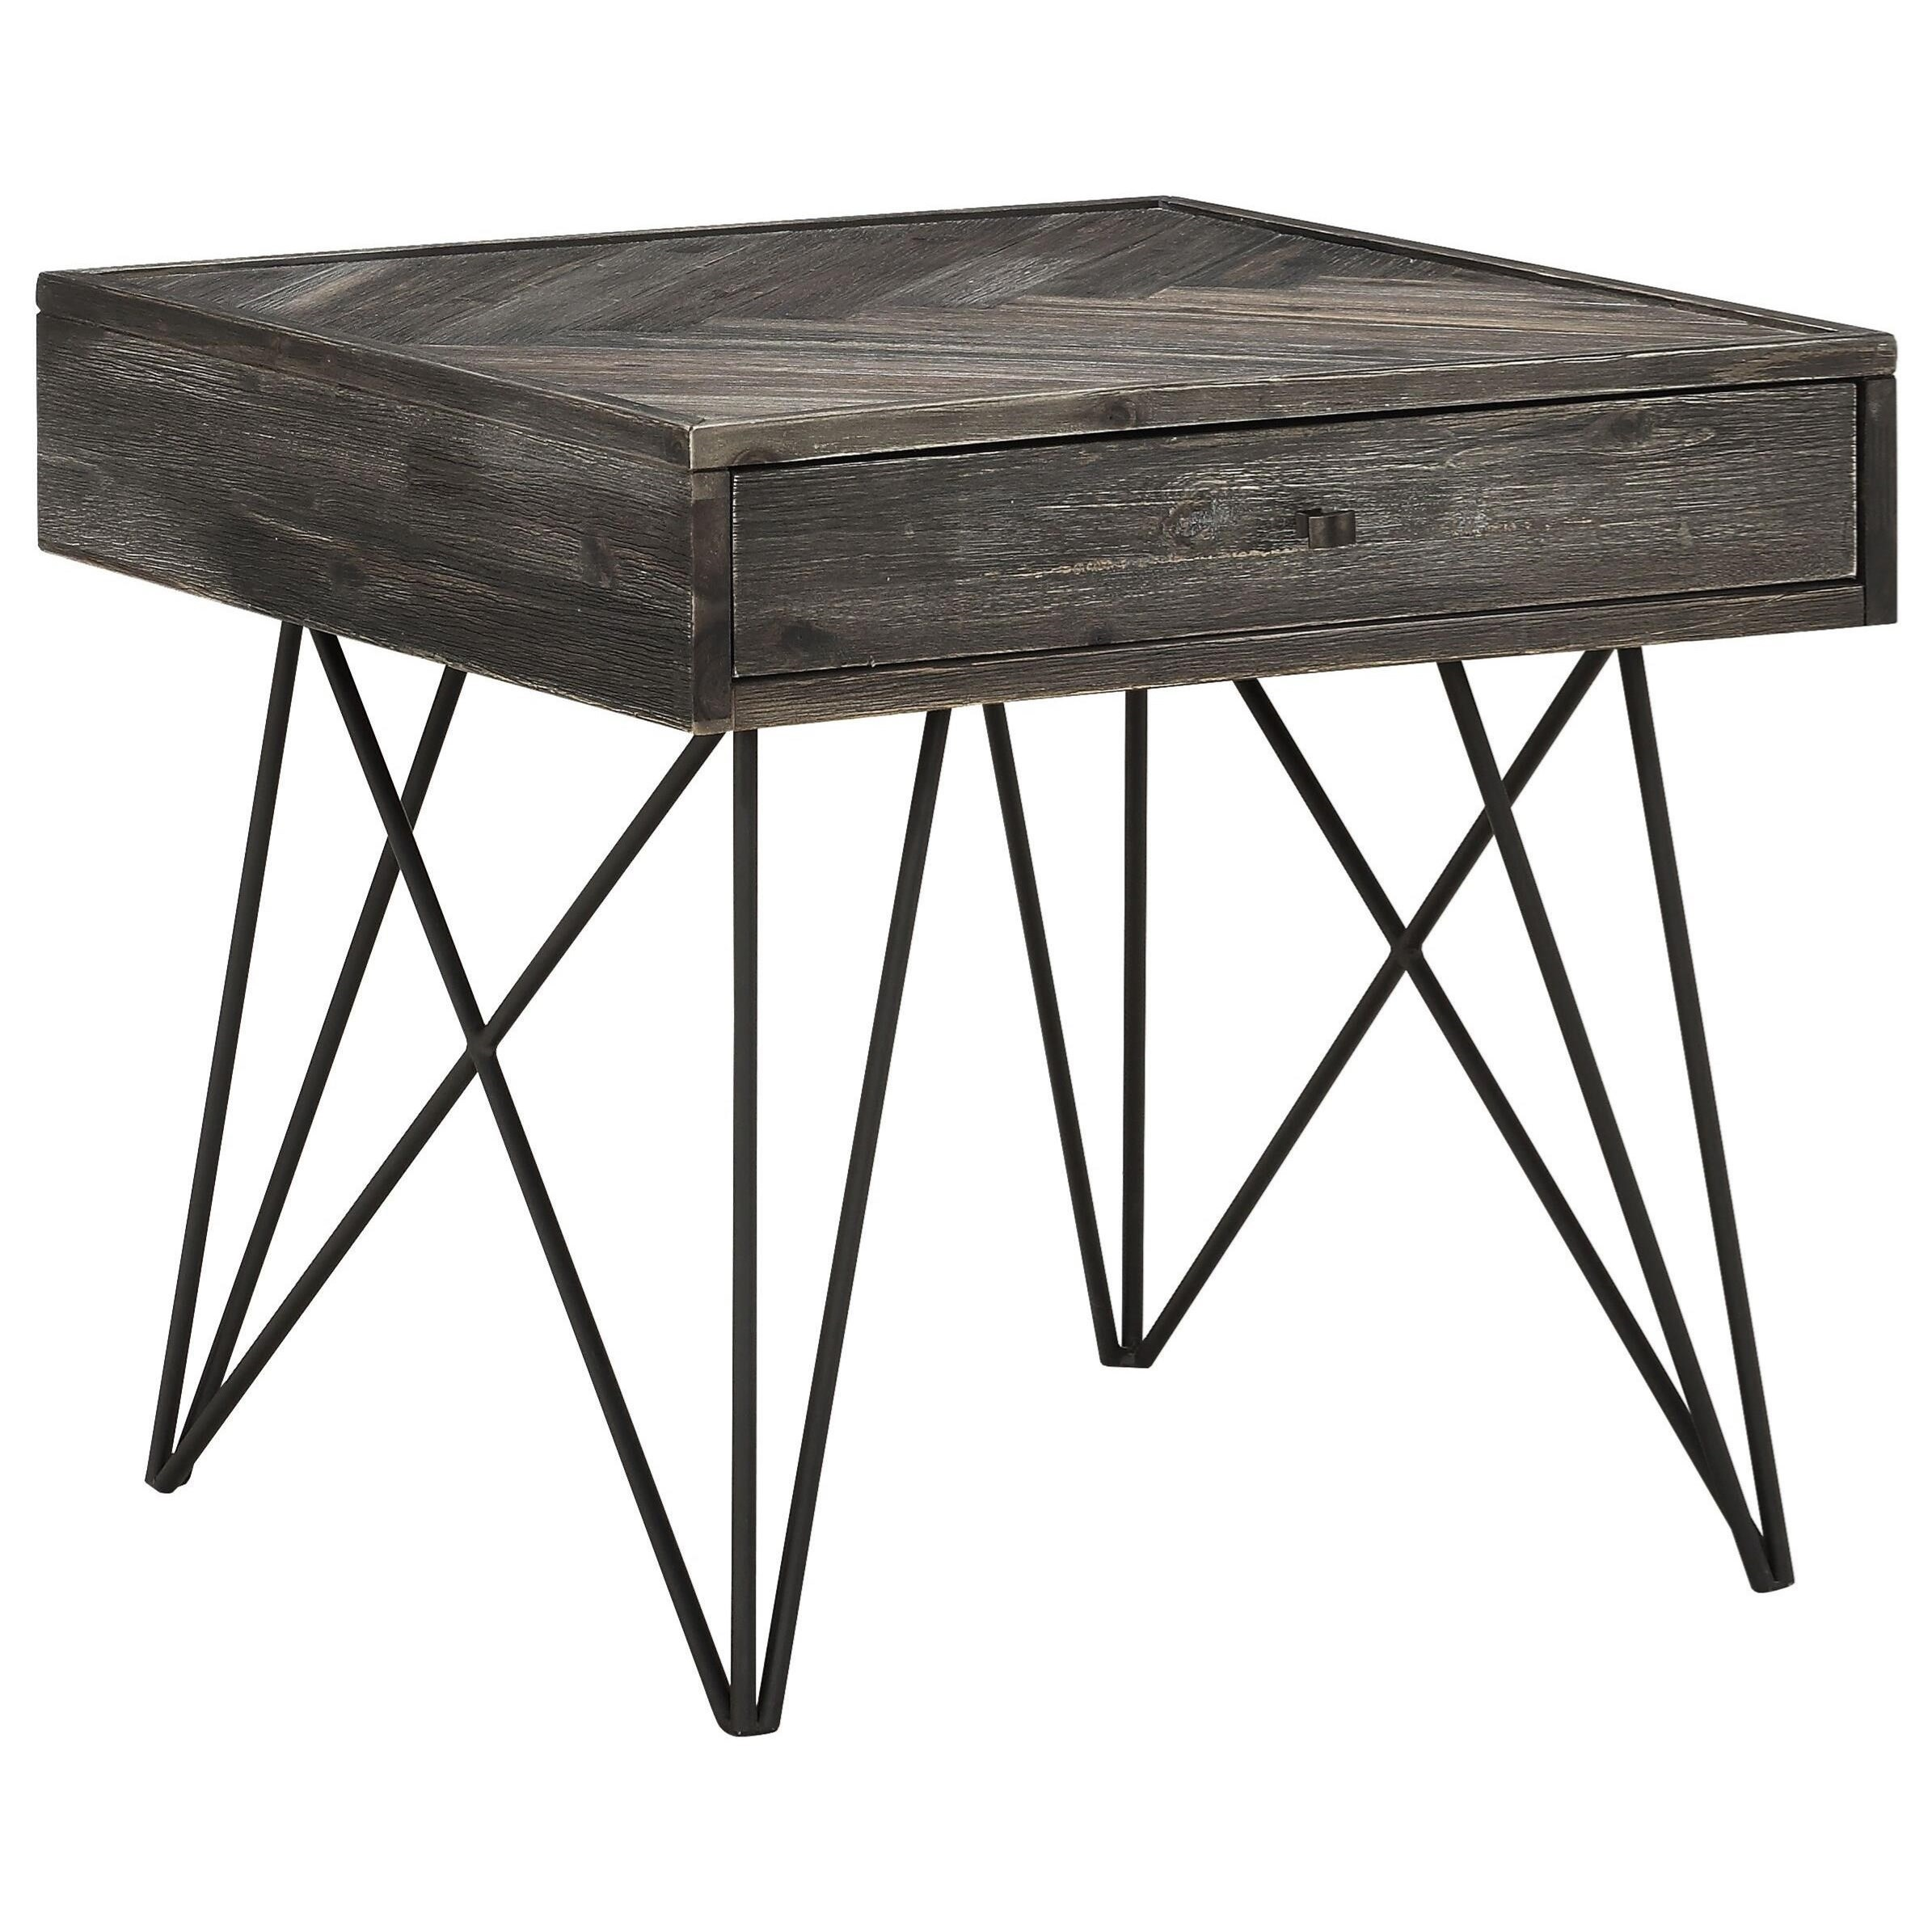 Aspen Court 1-Drawer End Table by Coast to Coast Imports at Baer's Furniture